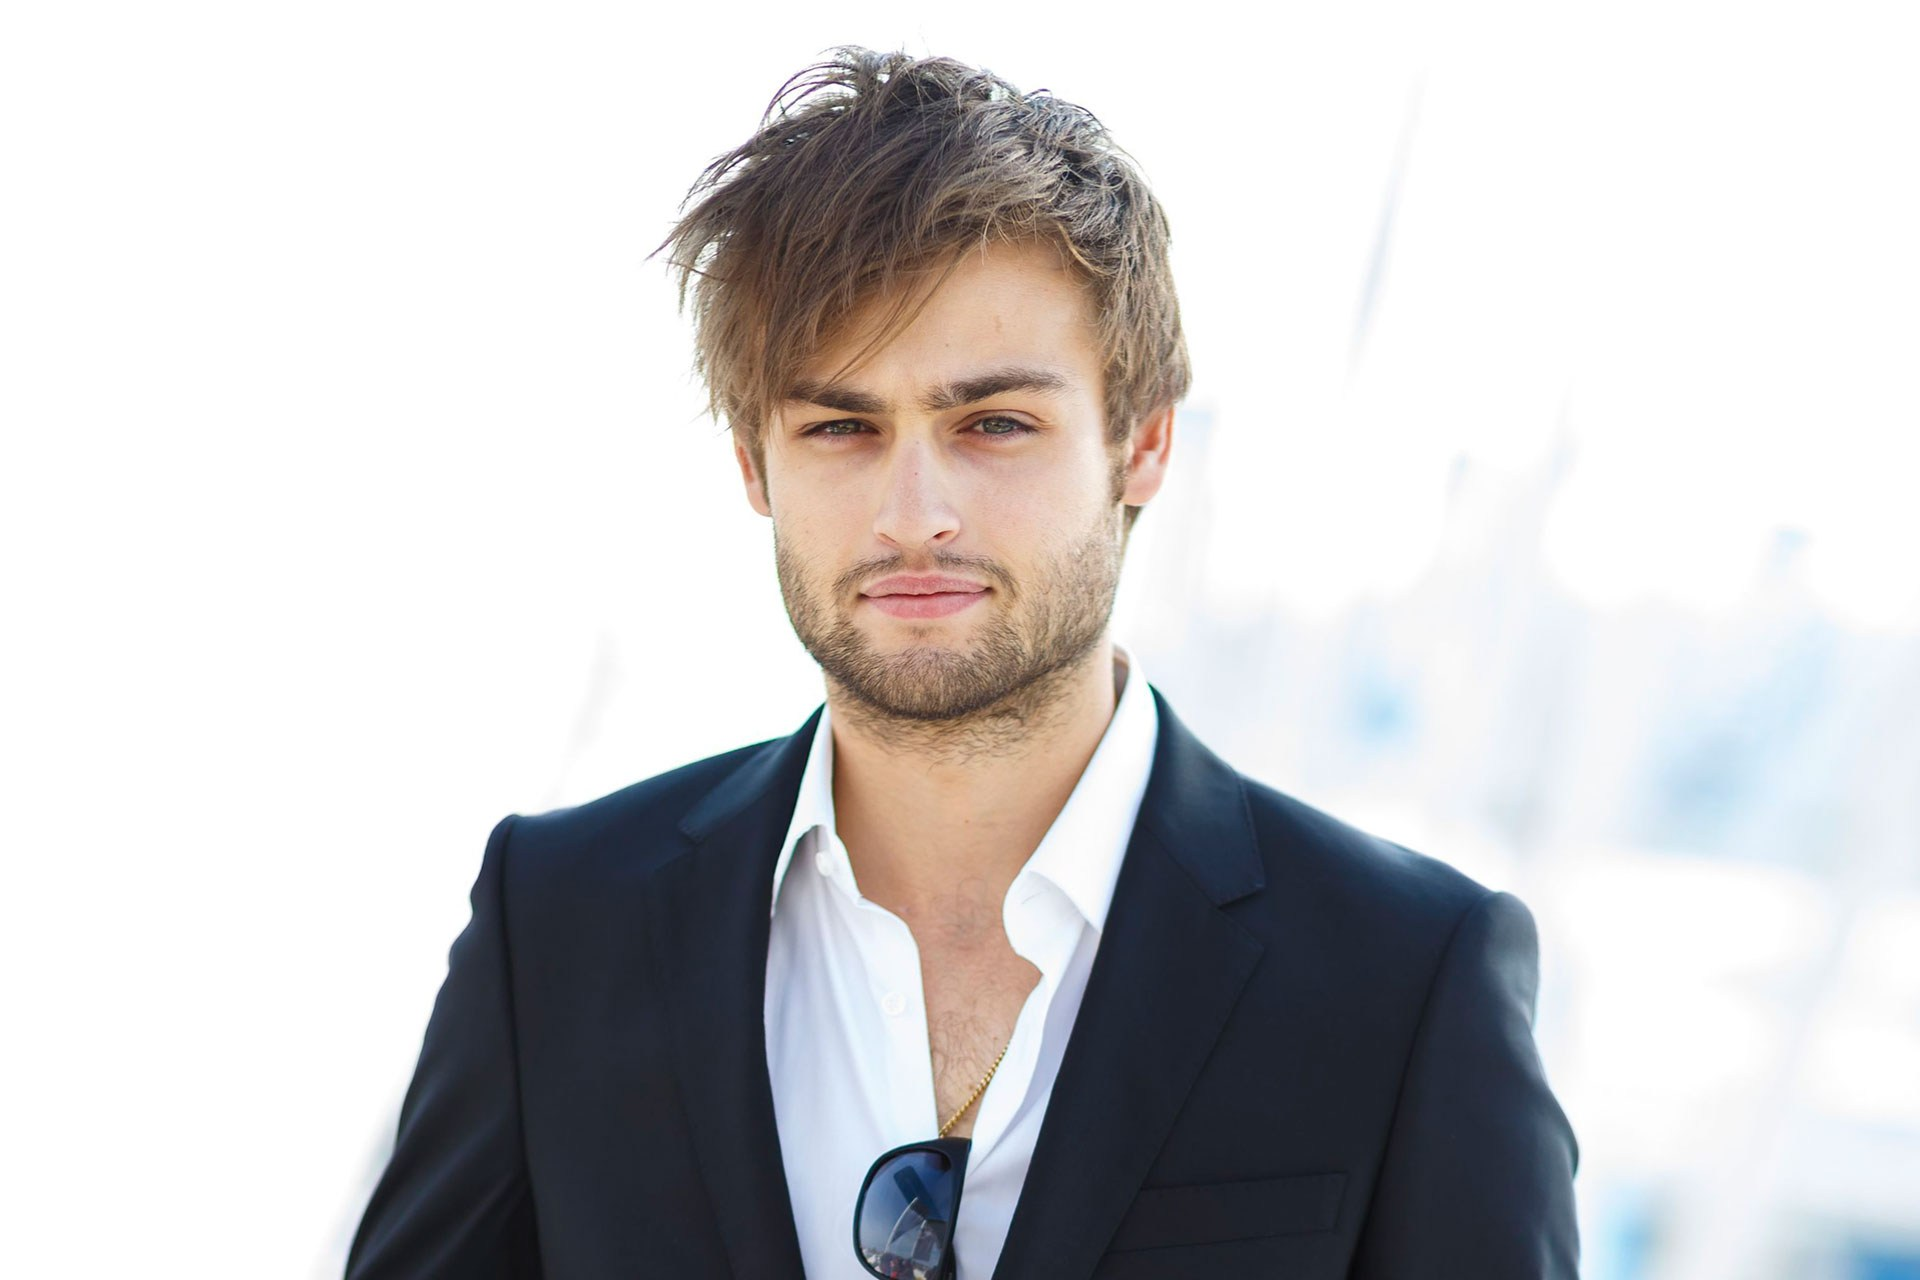 Douglas Booth HD Wallpaper | Background Image | 1920x1280 ...